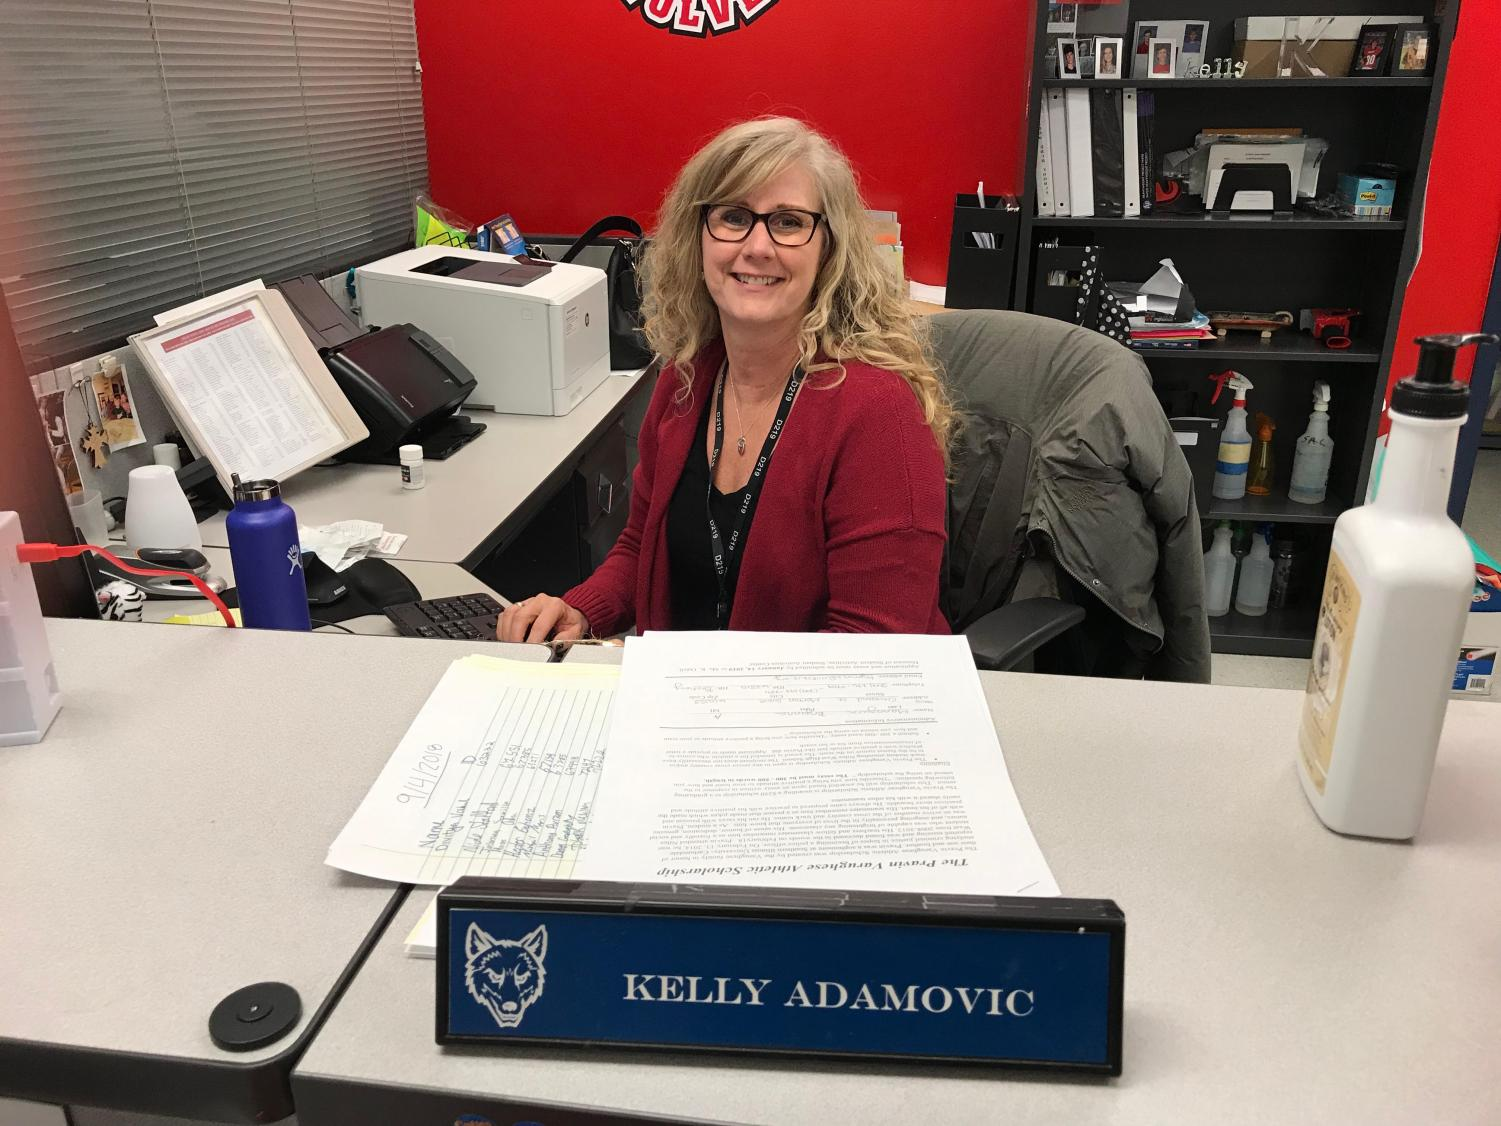 Assistant Activities director, Kelly Adamovic, sits at her desk, ready to take on the day with a smile.